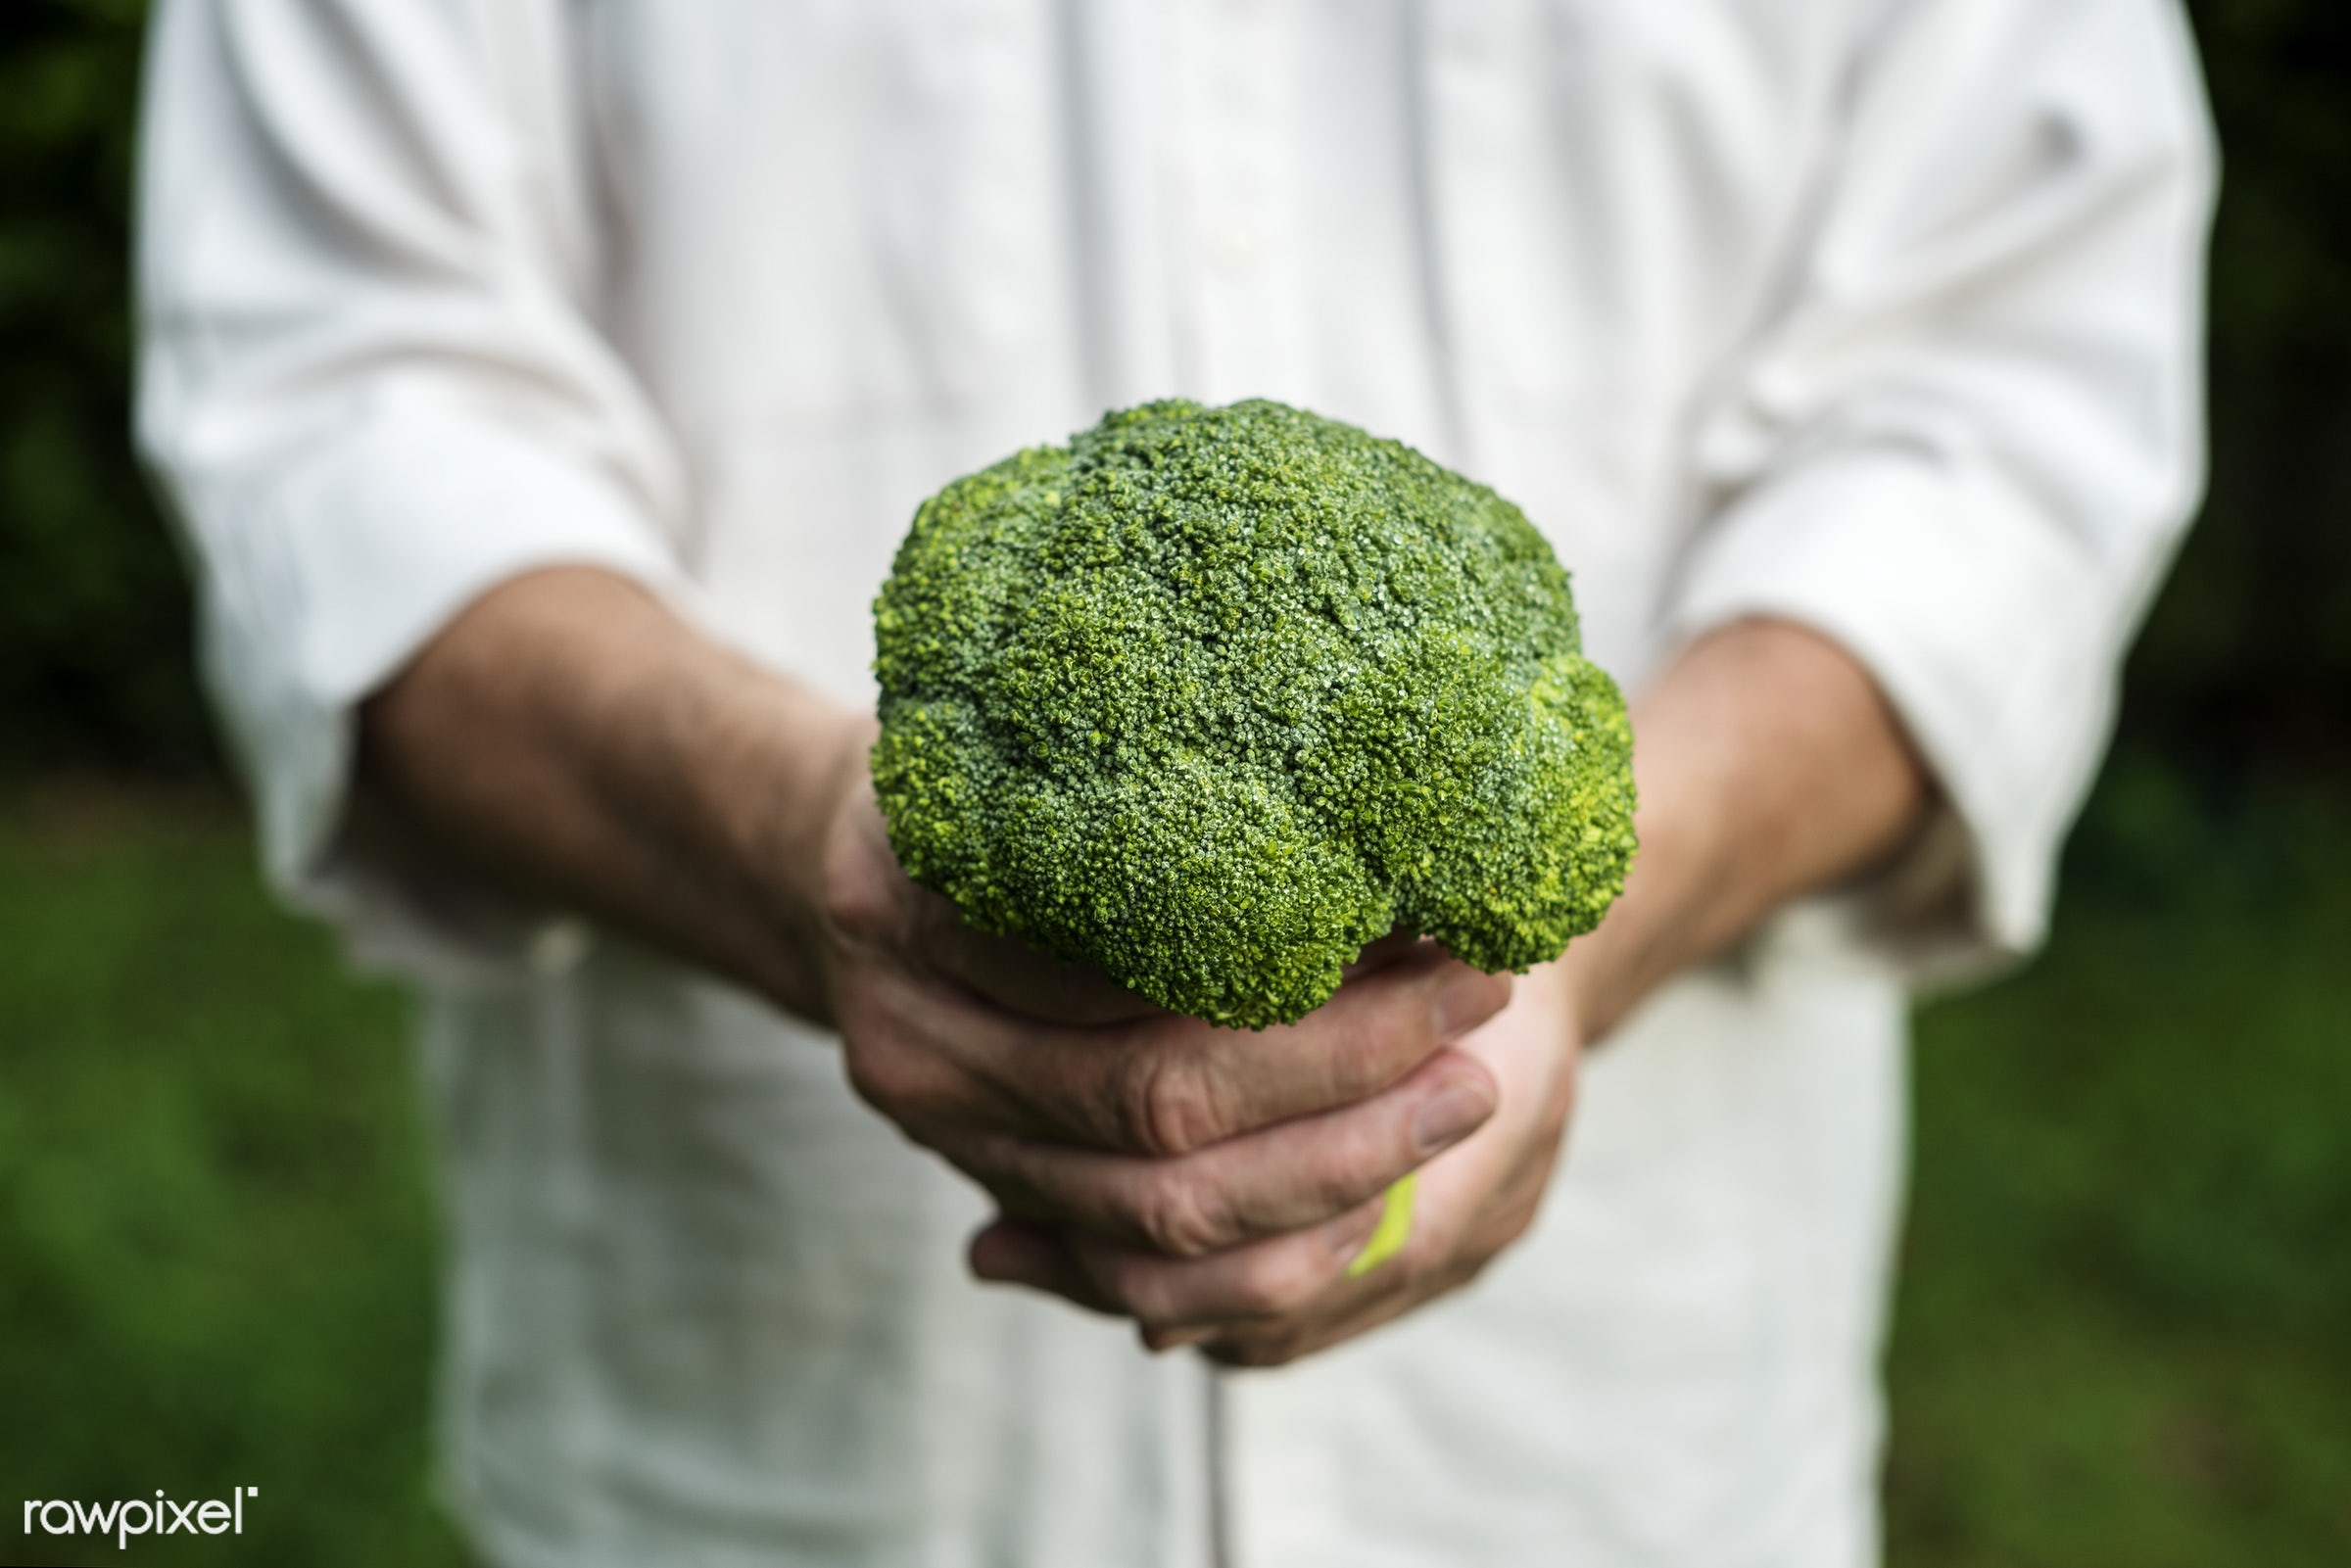 raw, holding, farm, nature, hands, fresh, broccoli, veggie, closeup, picking, organic, healthy, harvest, vegetable, produce